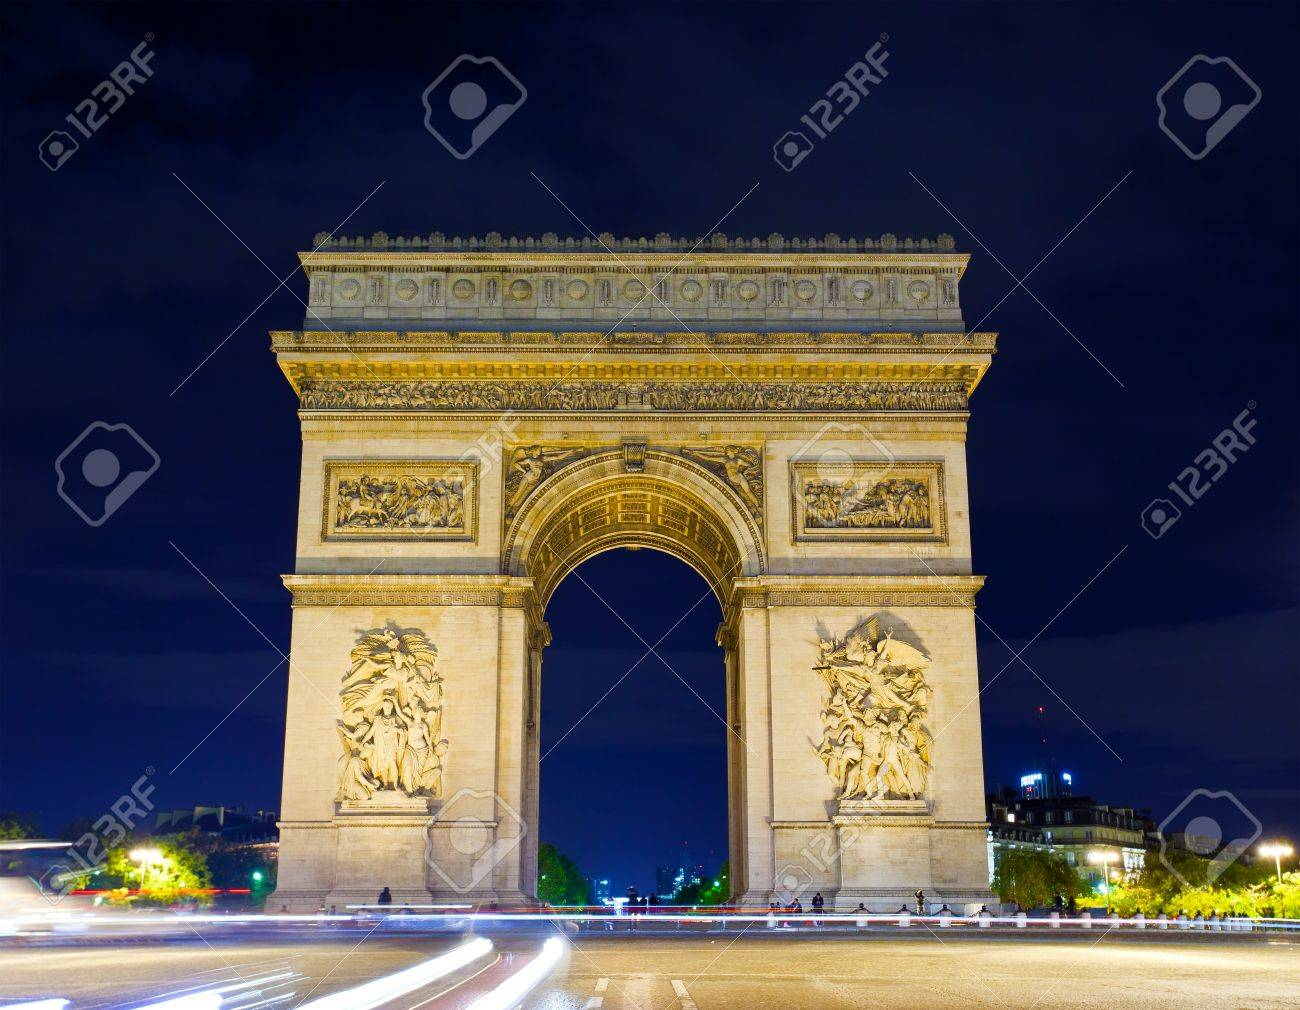 Arch of Triumph at night, Paris, France Stock Photo - 15877293